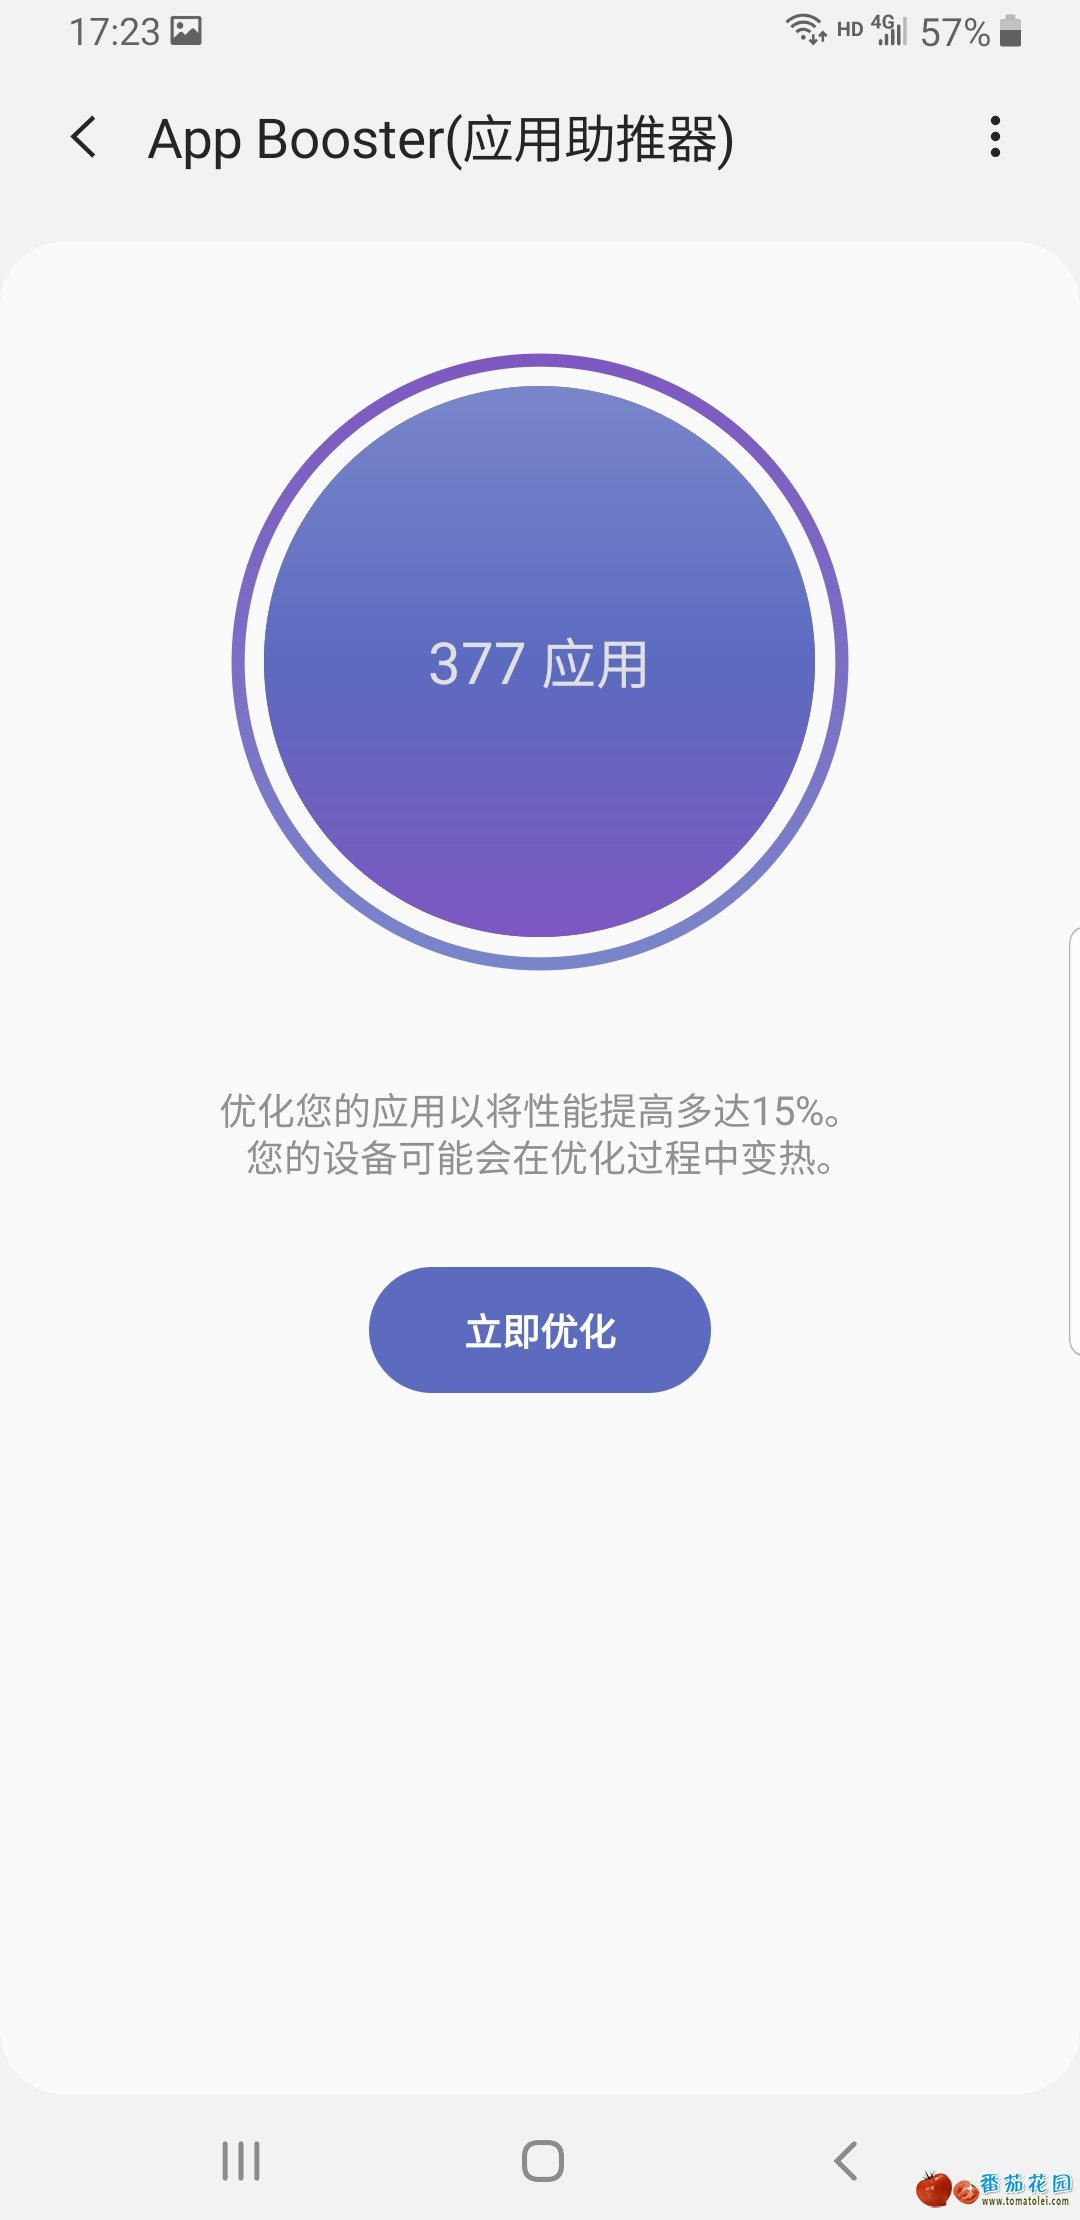 Screenshot_20191109-172341_App Booster.jpg